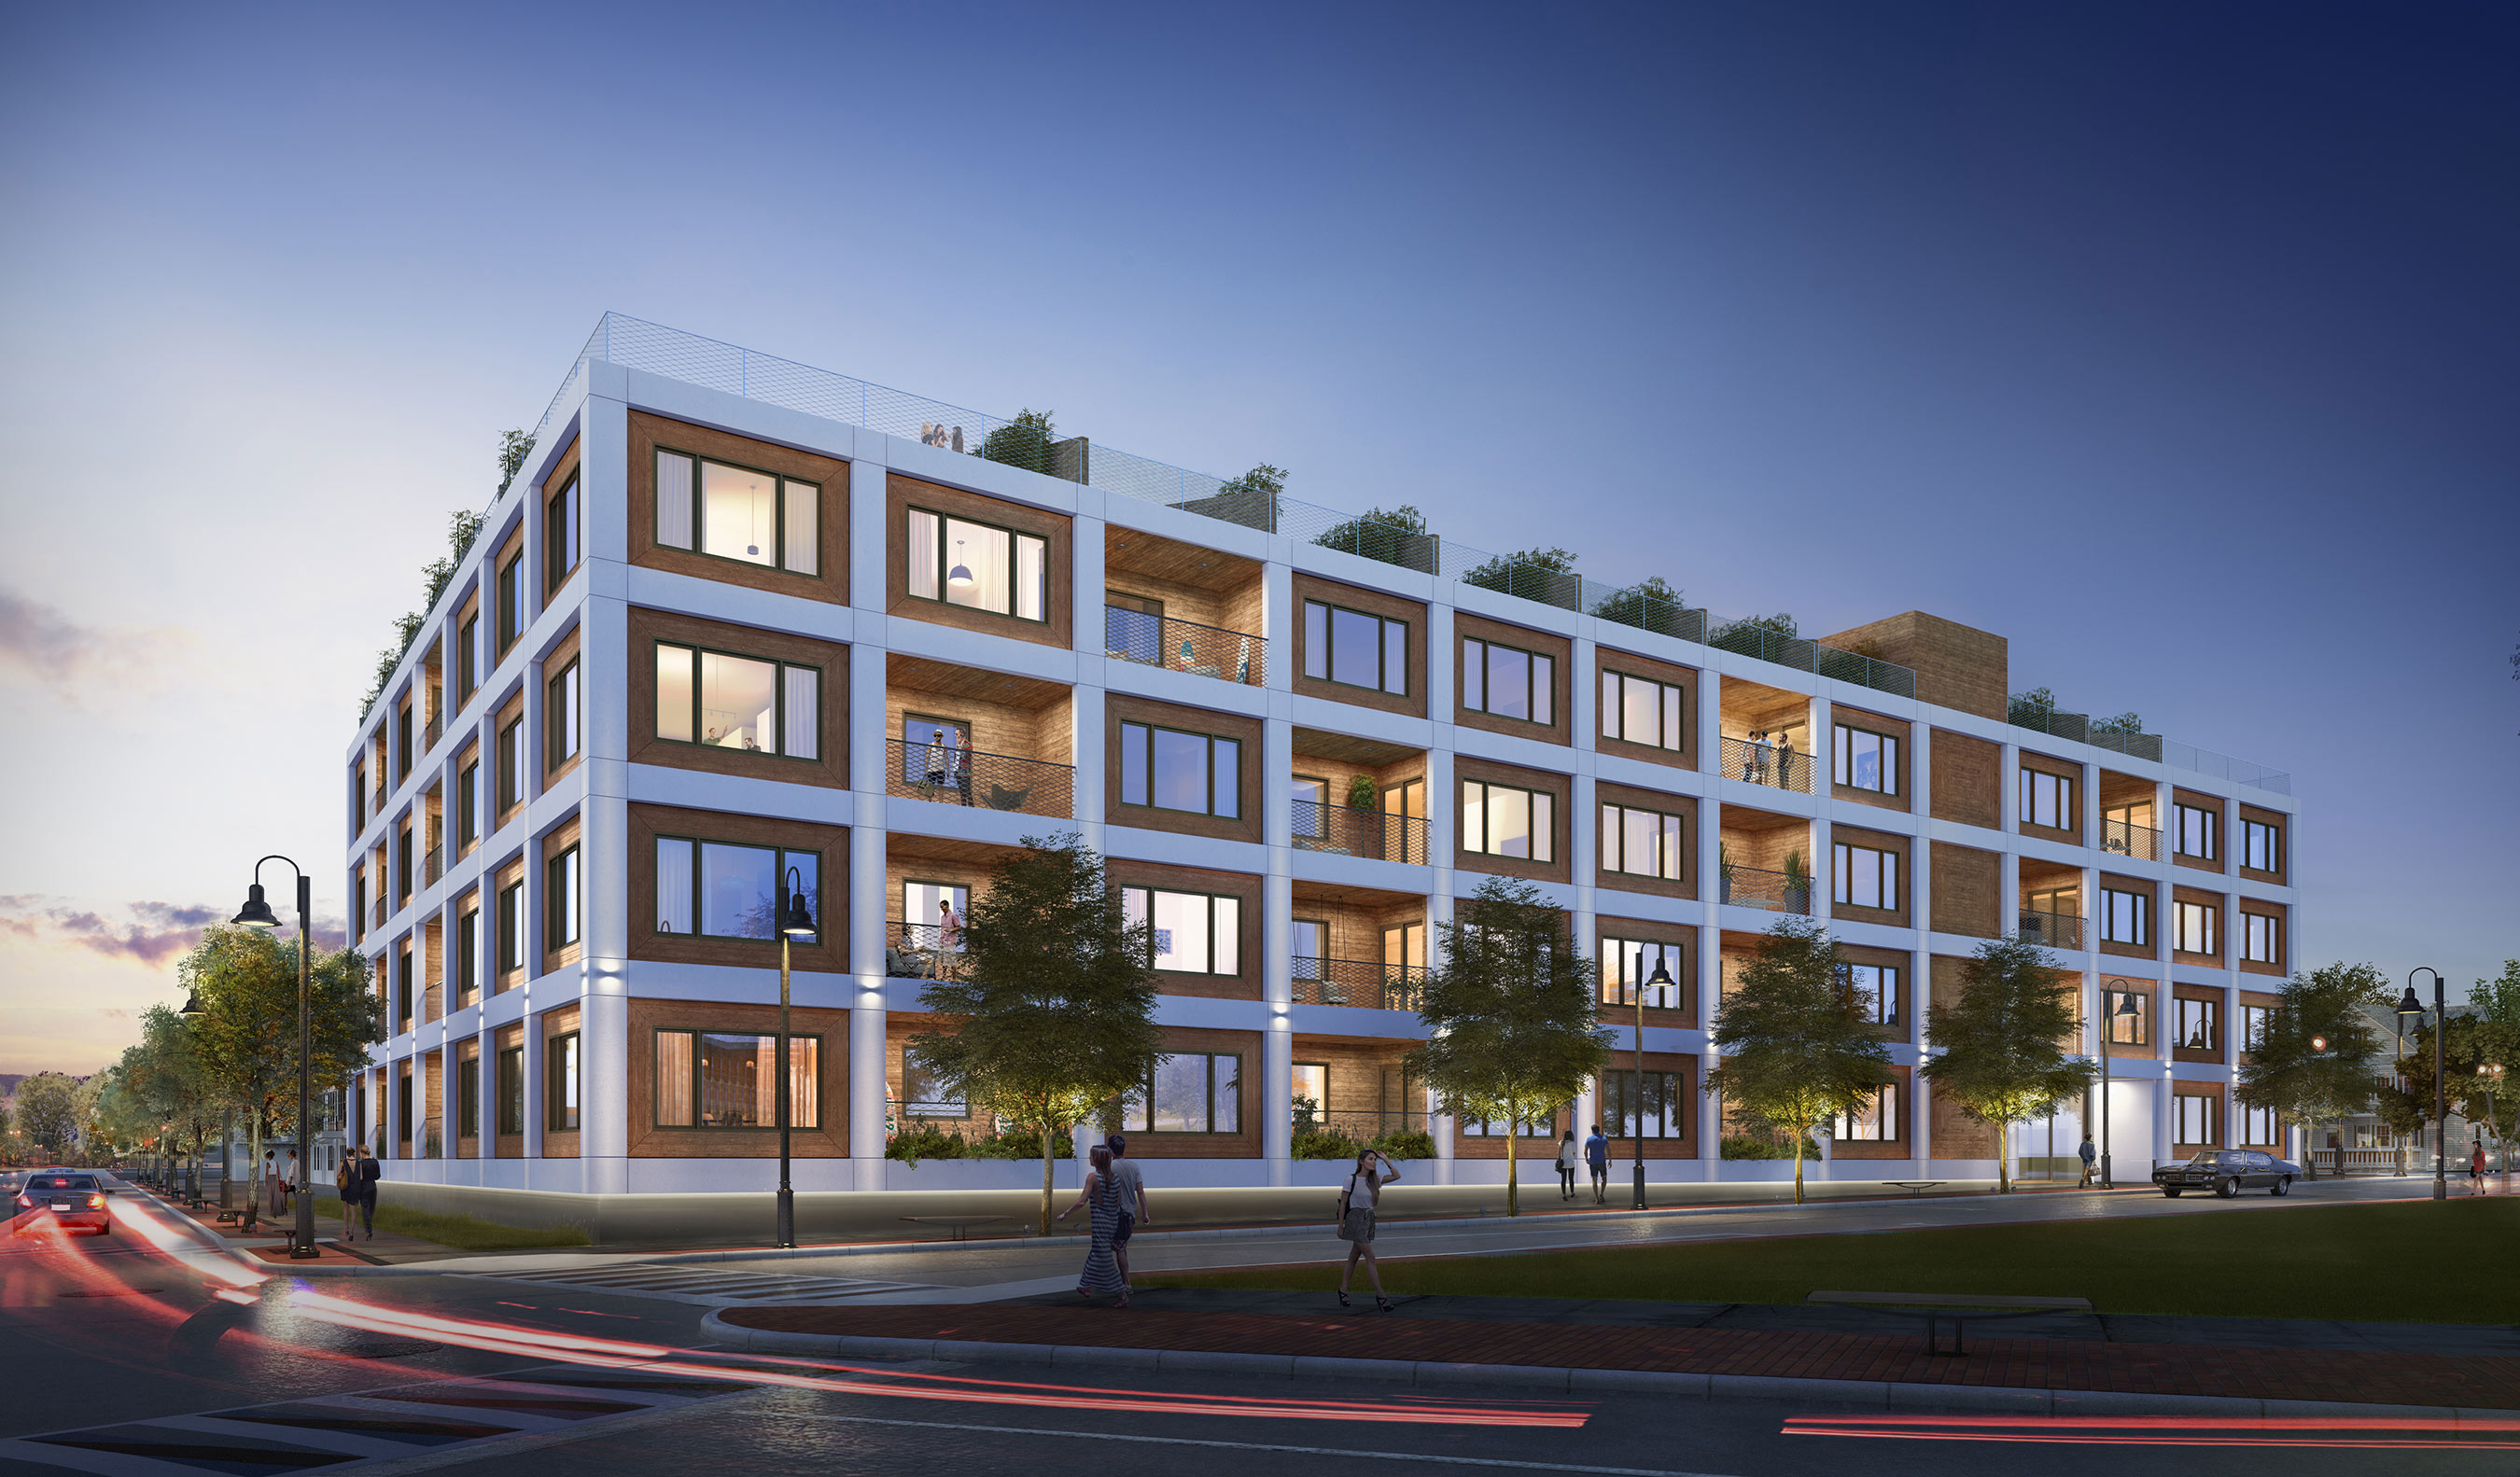 Monroe, a stylish 34-unit condominium project opening summer 2016